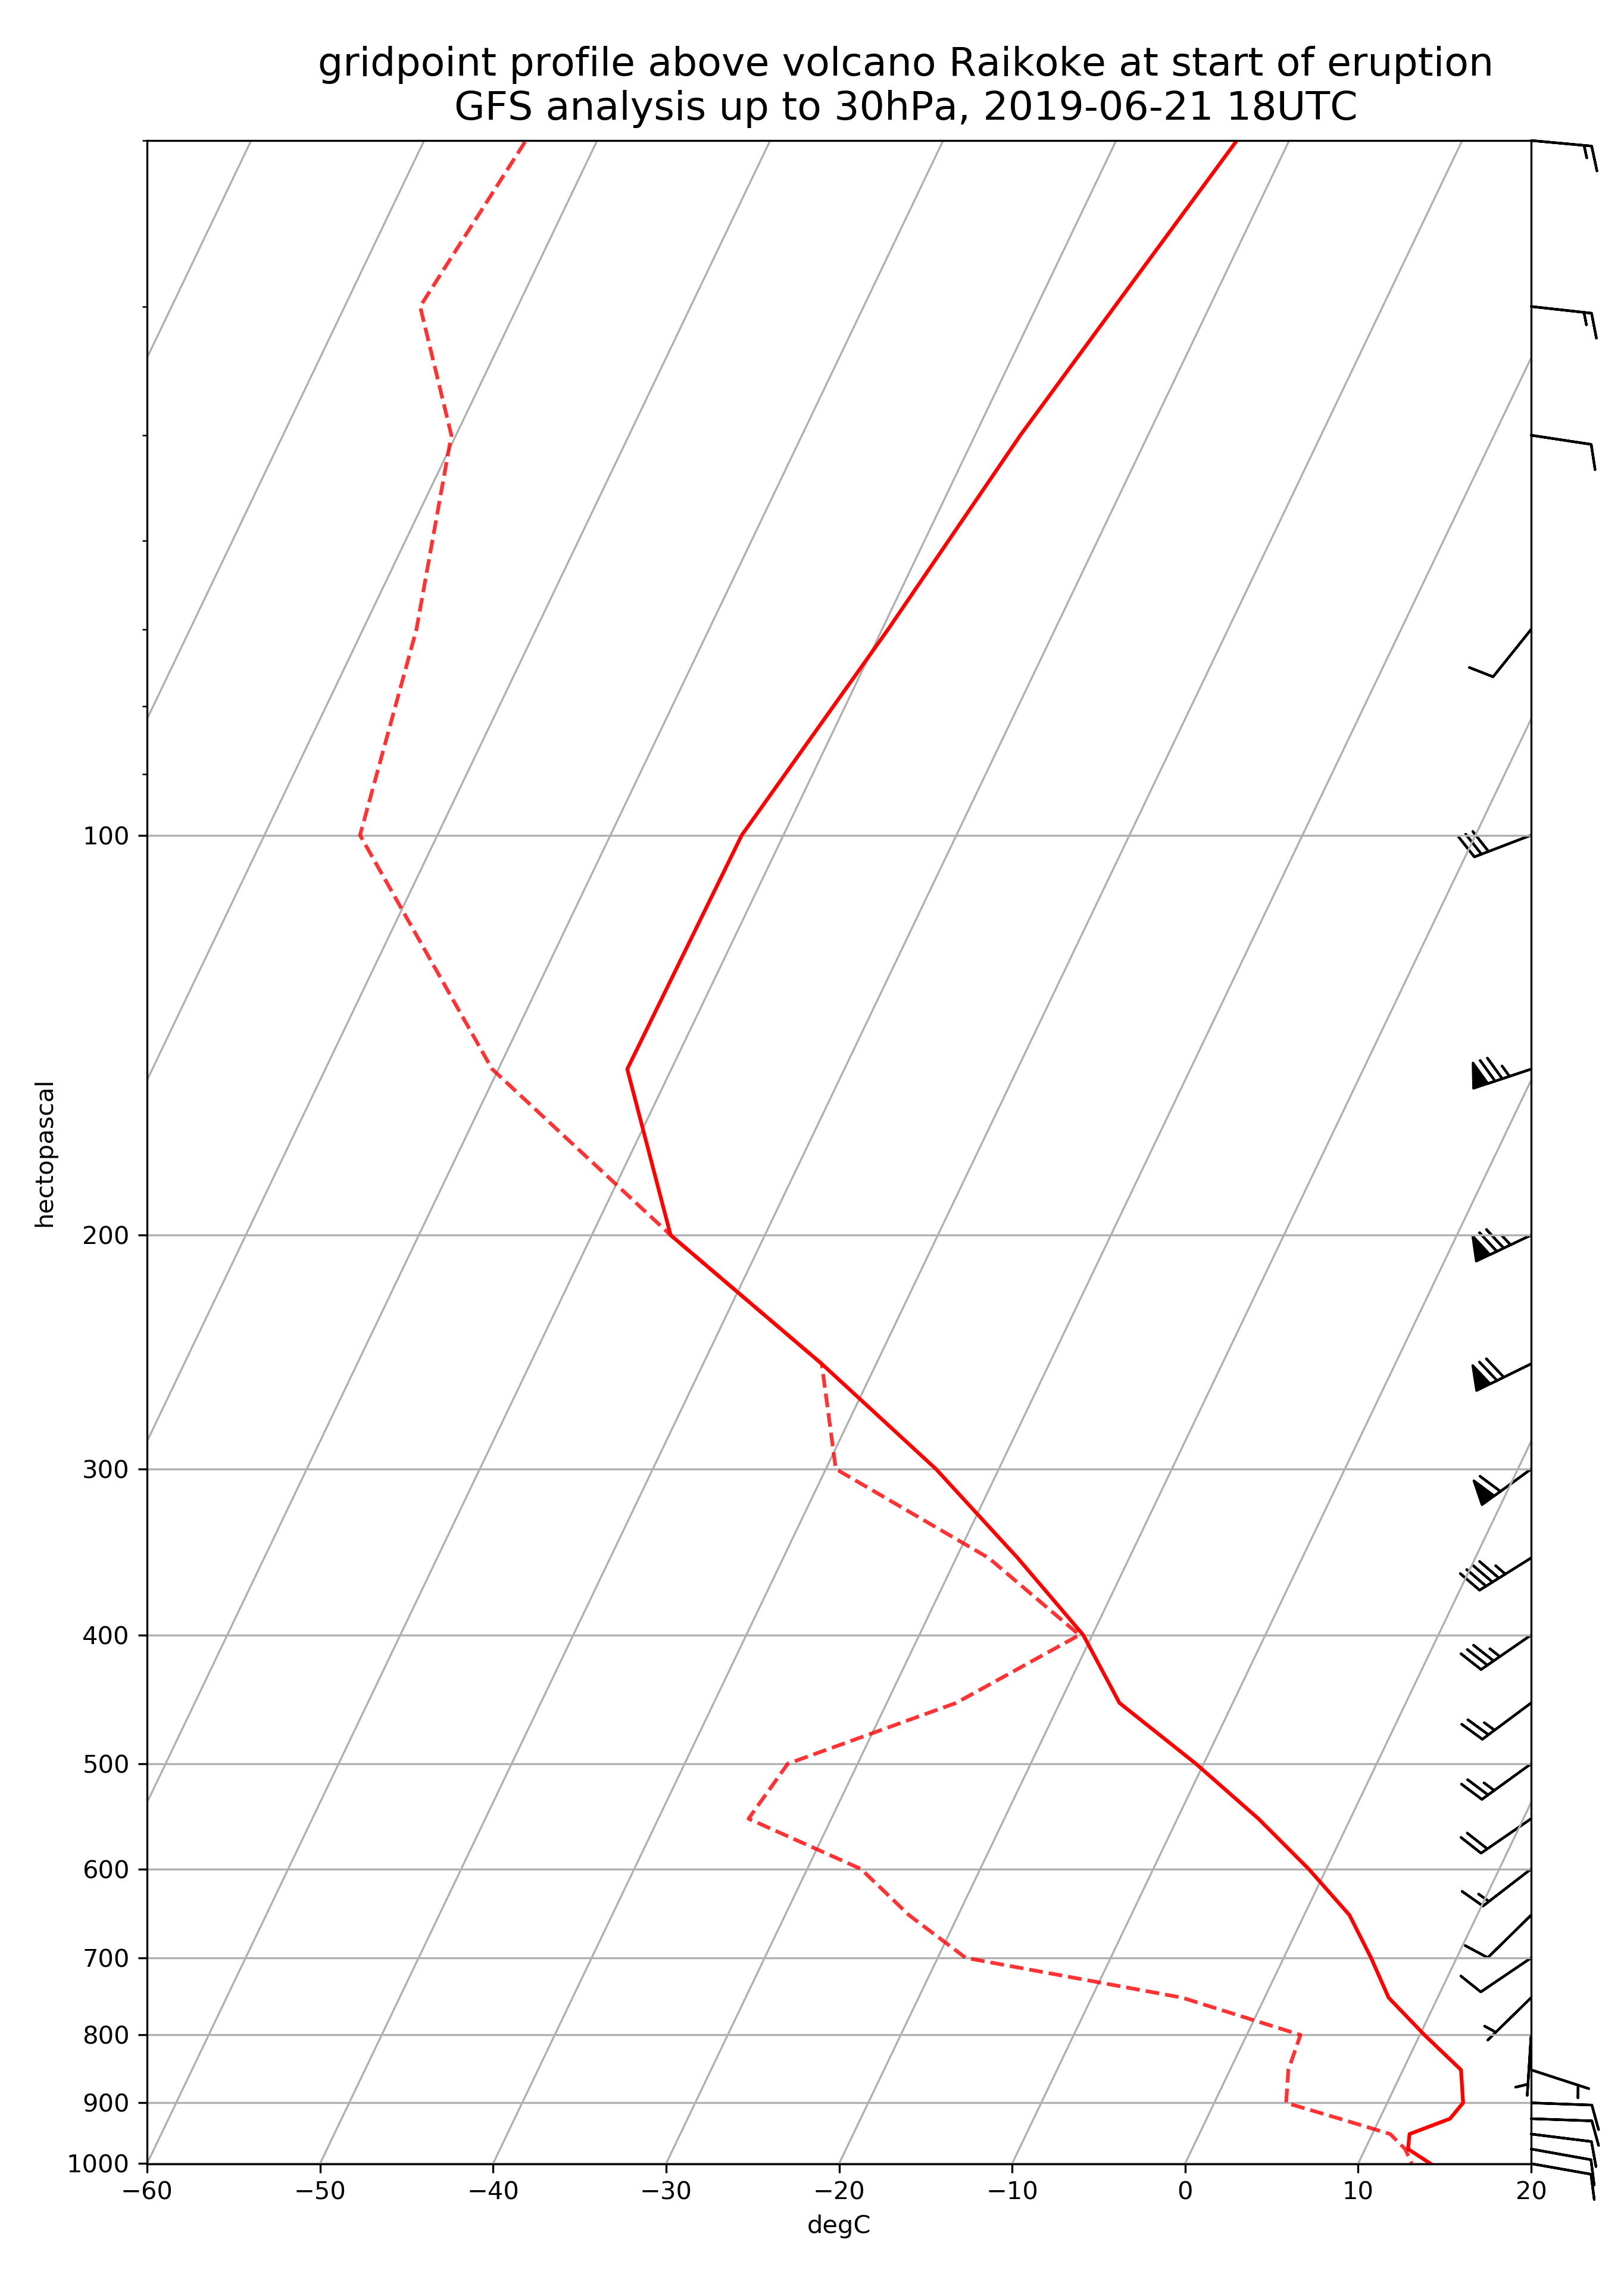 Skew-T profile extracted from the GFS analysis at 18:00 UTC on 21 June